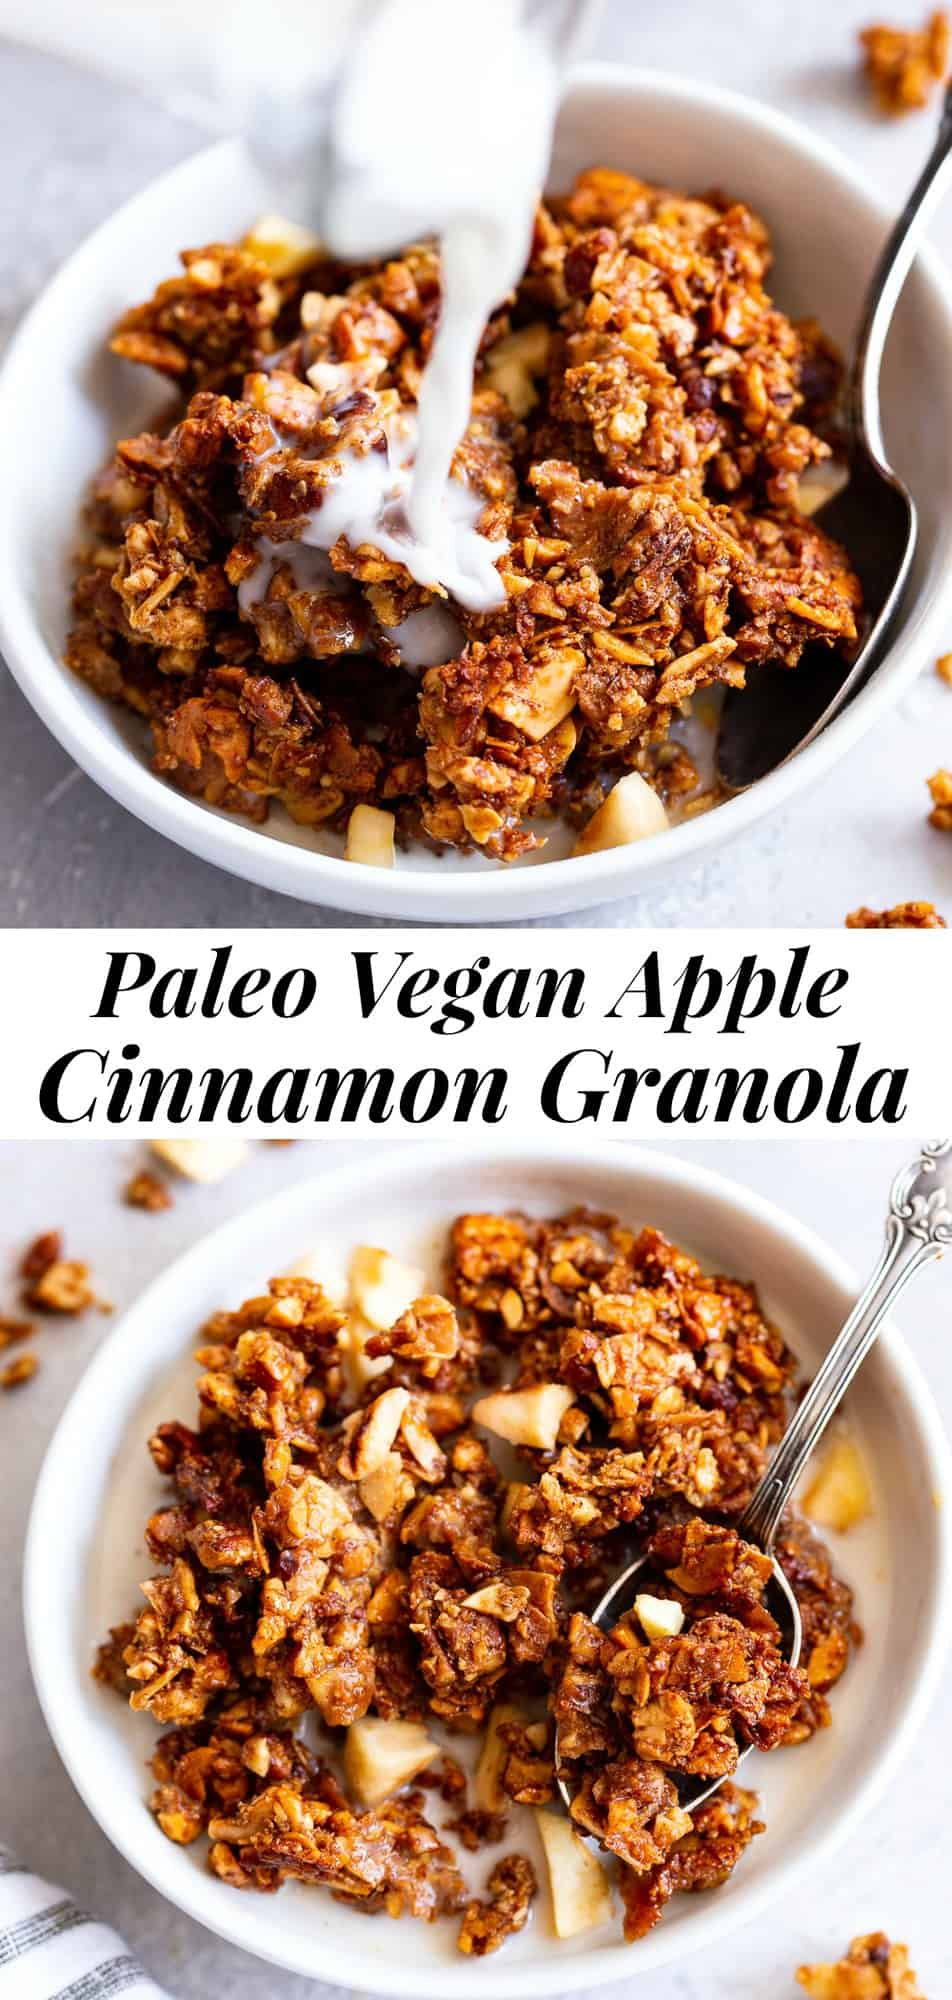 This apple cinnamon granola is the ultimate grain free granola for fall!  Packed with apple pie spice, chopped nuts, coconut, chewy dried apples and sweetened with maple syrup, this baked granola is perfect for breakfast with dairy free milk or for snacking on by the handful!  It's vegan, dairy free, and paleo friendly.  #paleo #vegan #cleaneating